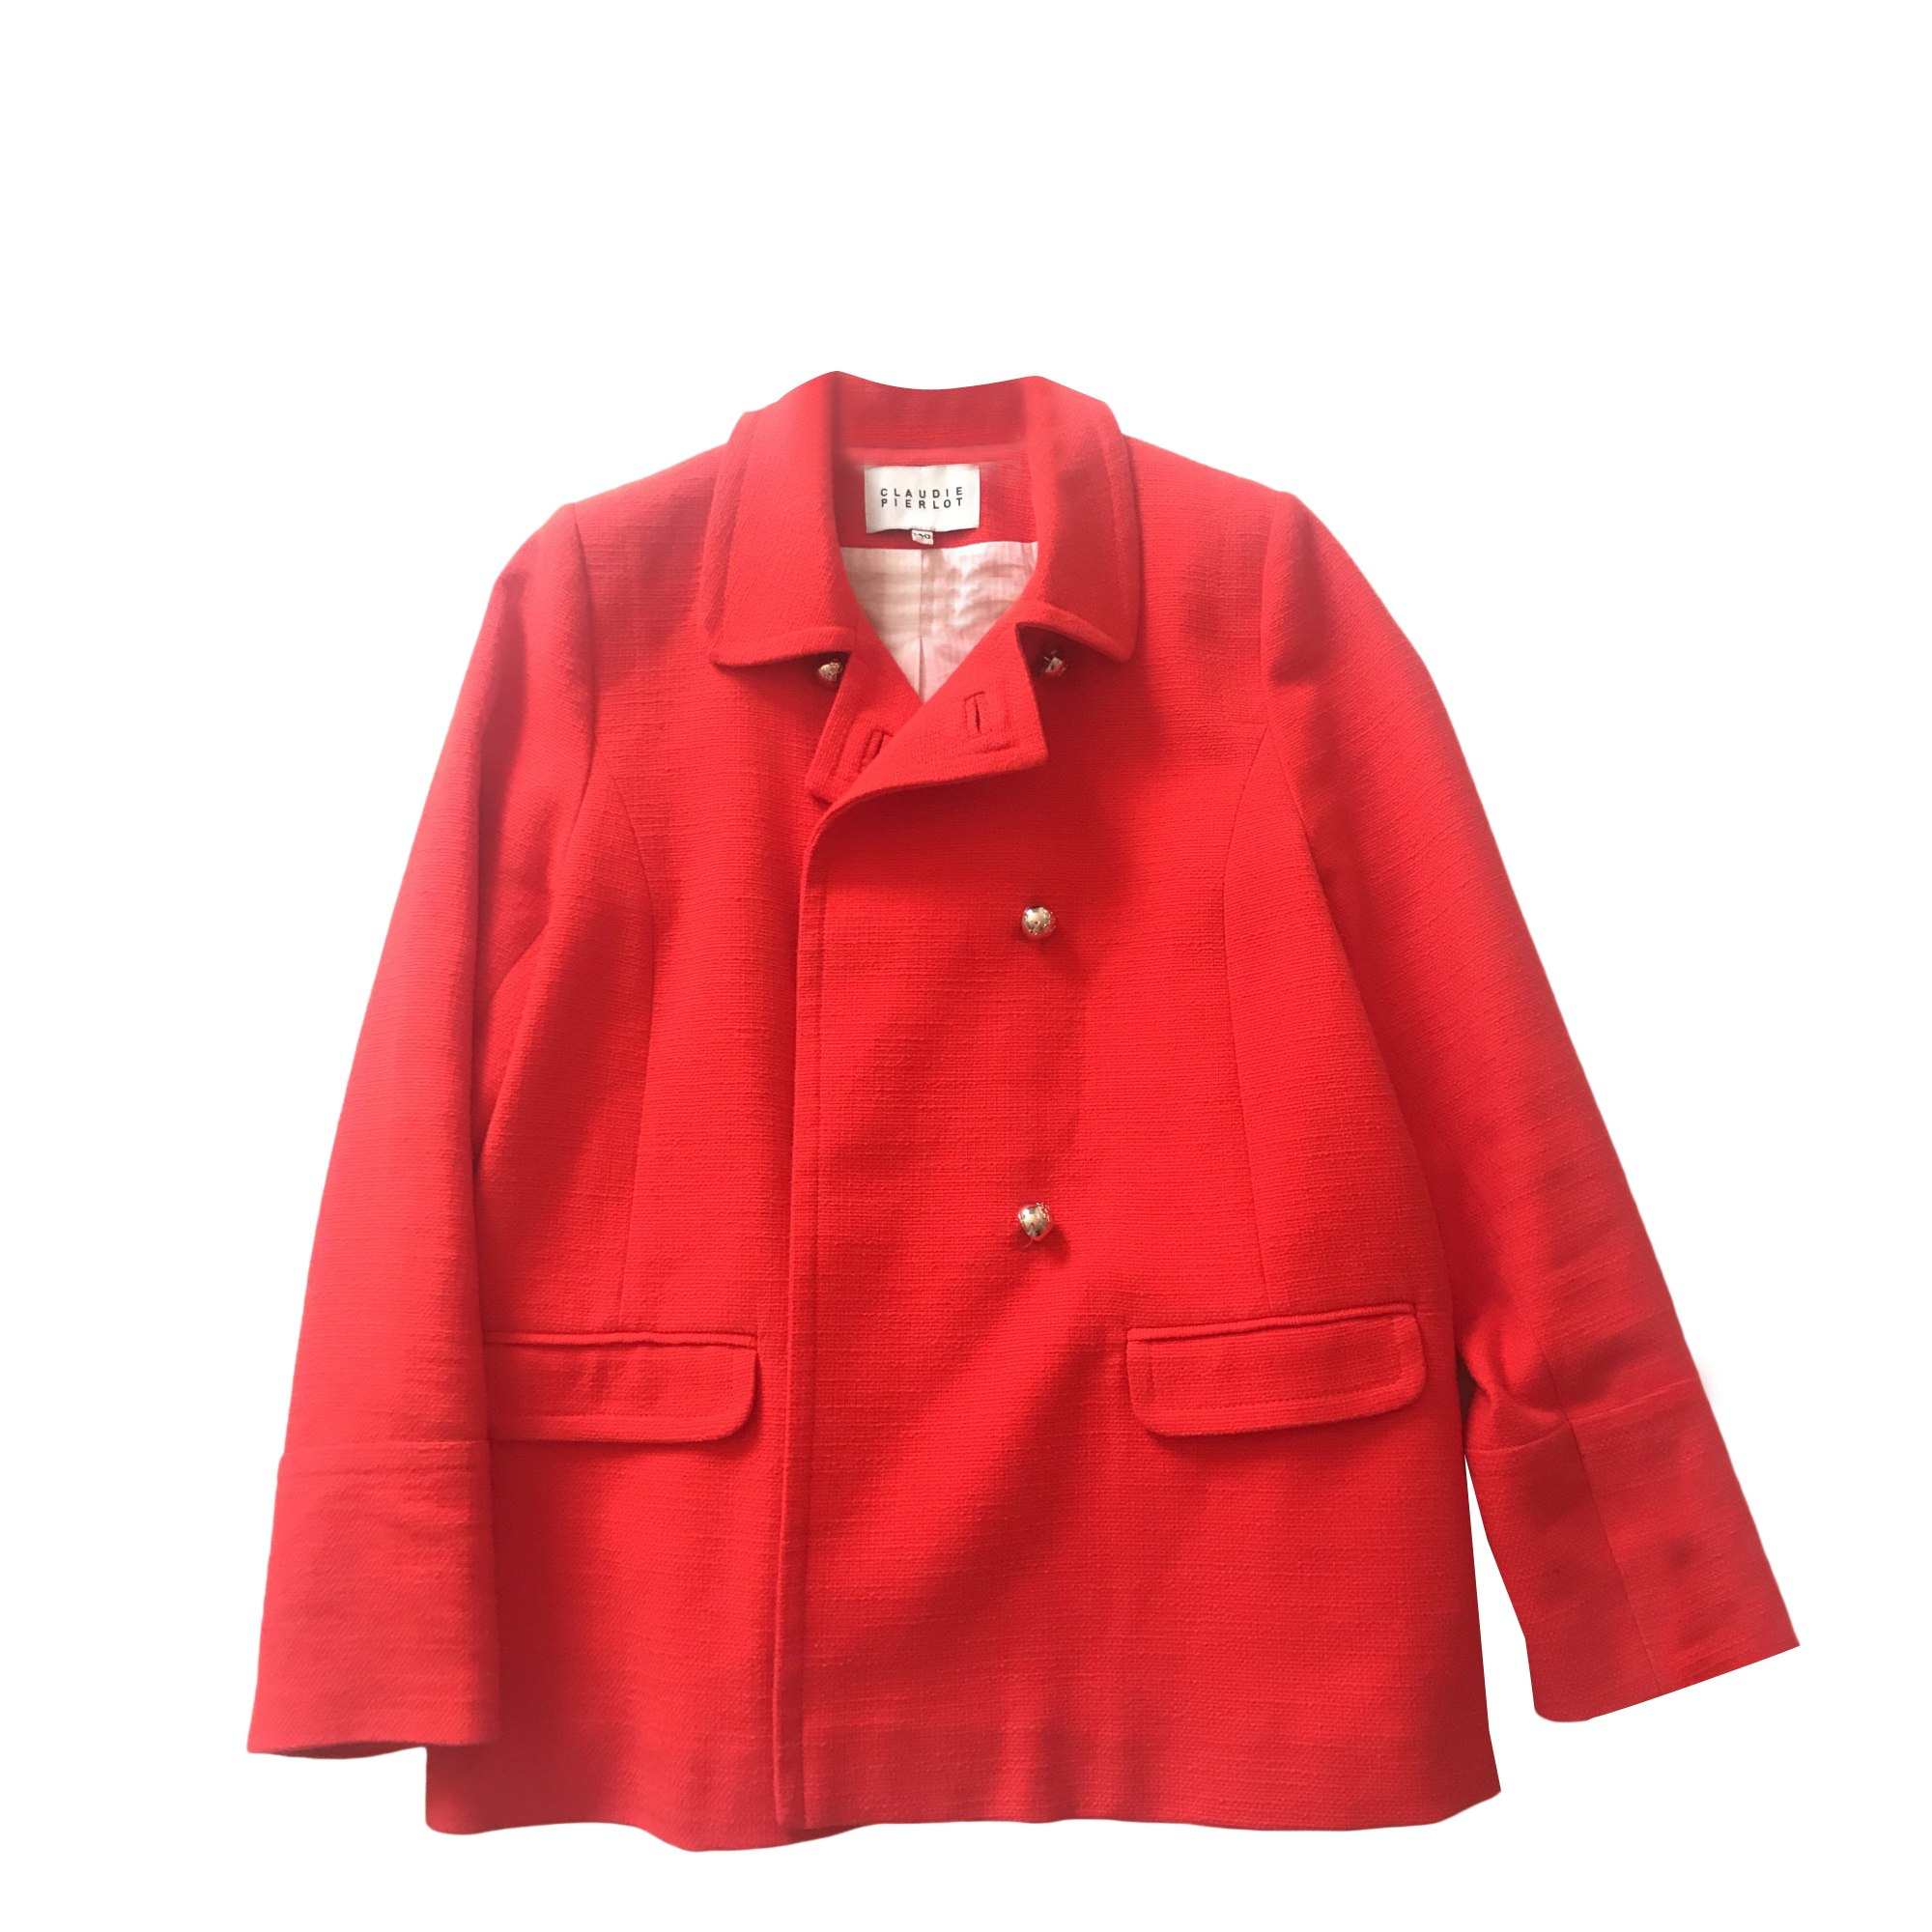 Caban CLAUDIE PIERLOT Rouge, bordeaux